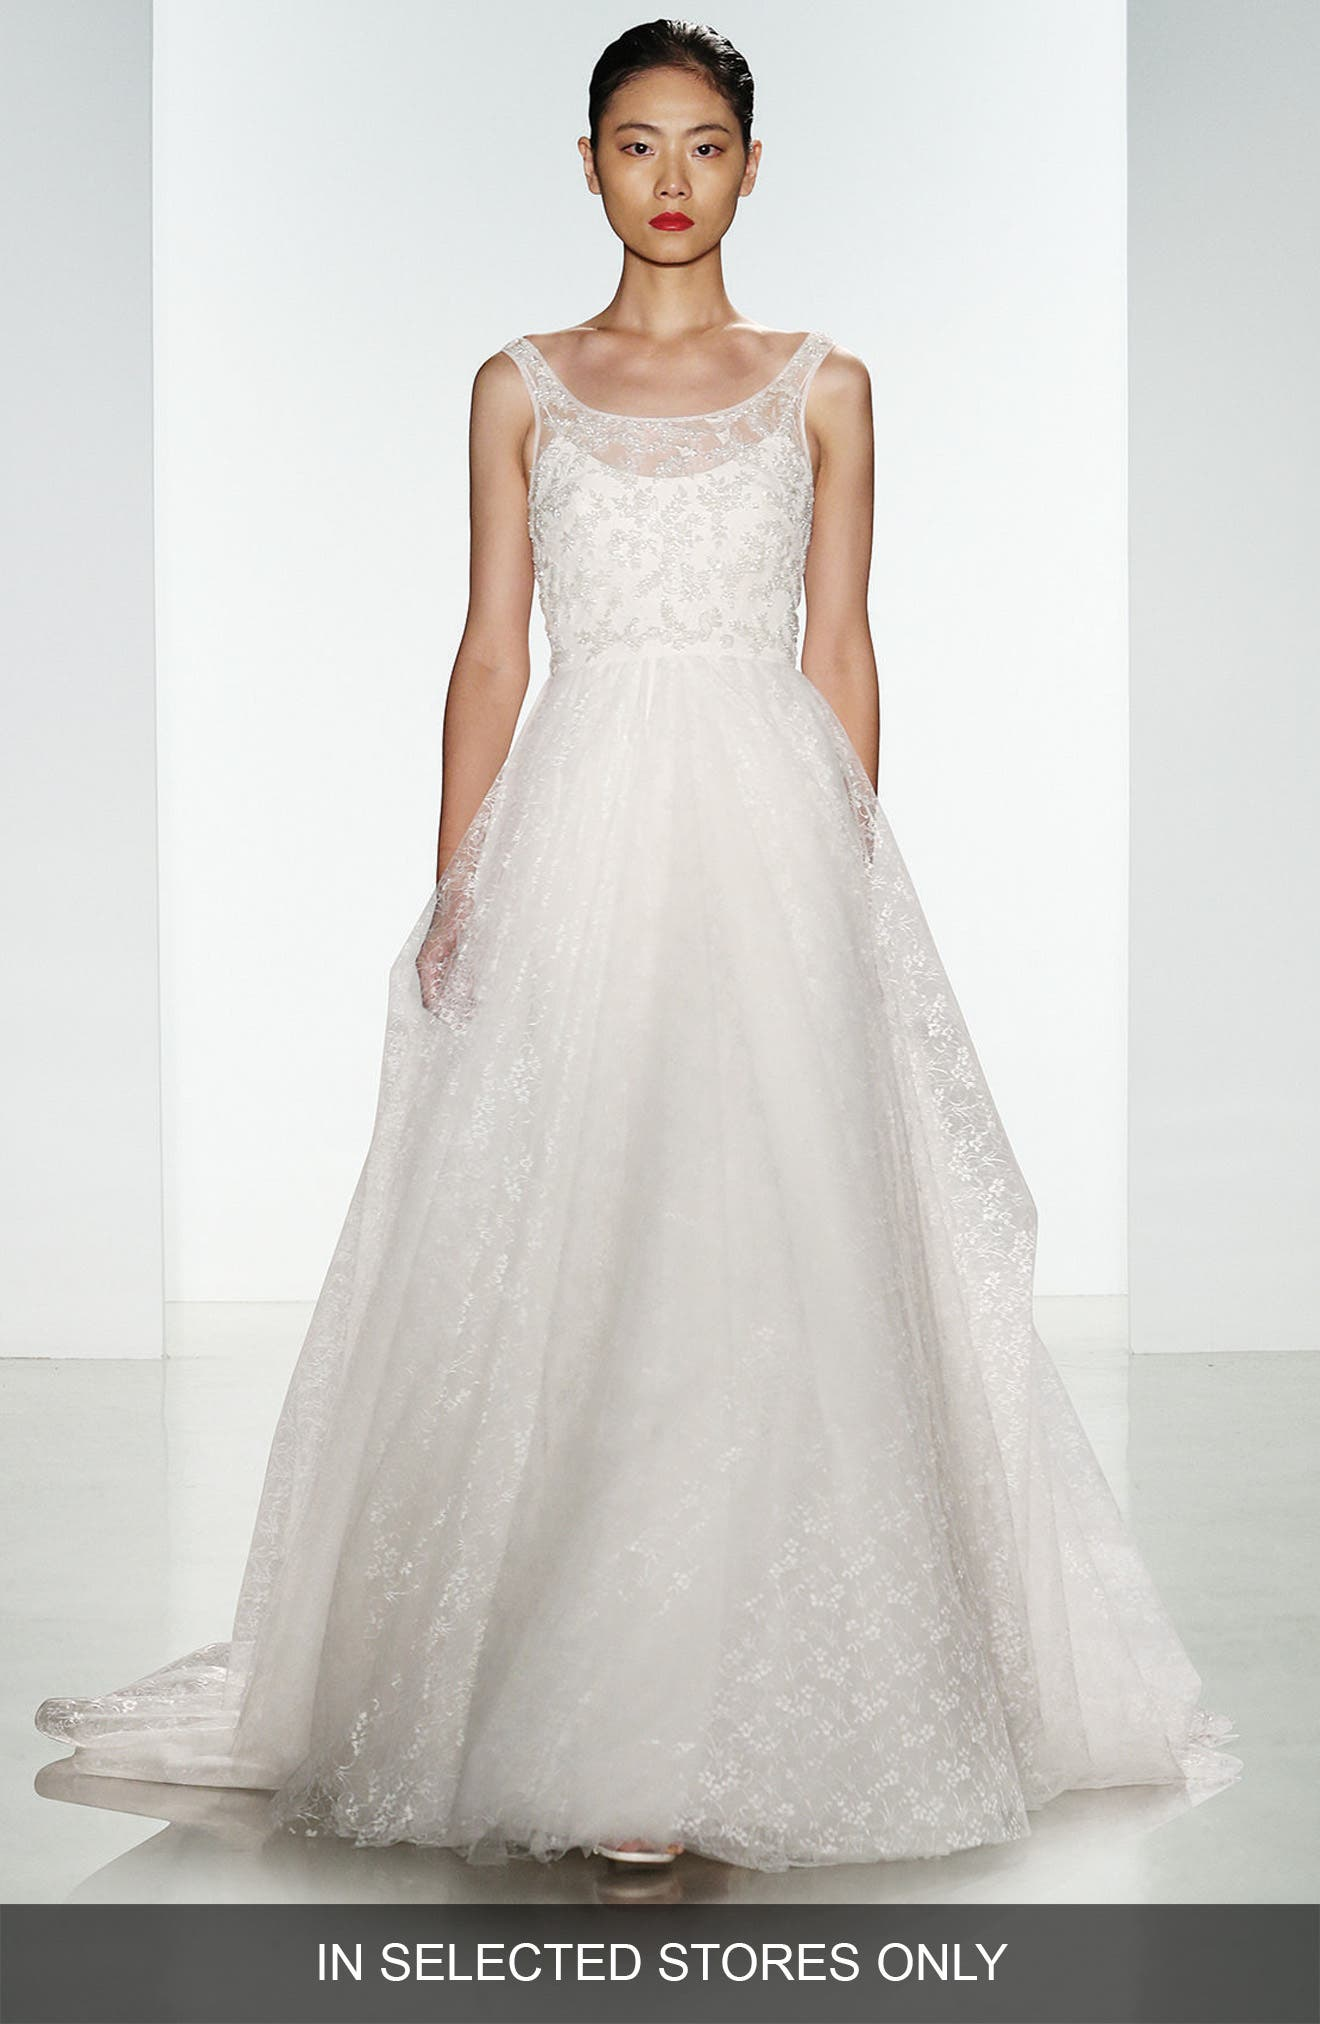 Claire Beaded Chantilly Lace & Floral Tulle Ballgown,                             Alternate thumbnail 5, color,                             900